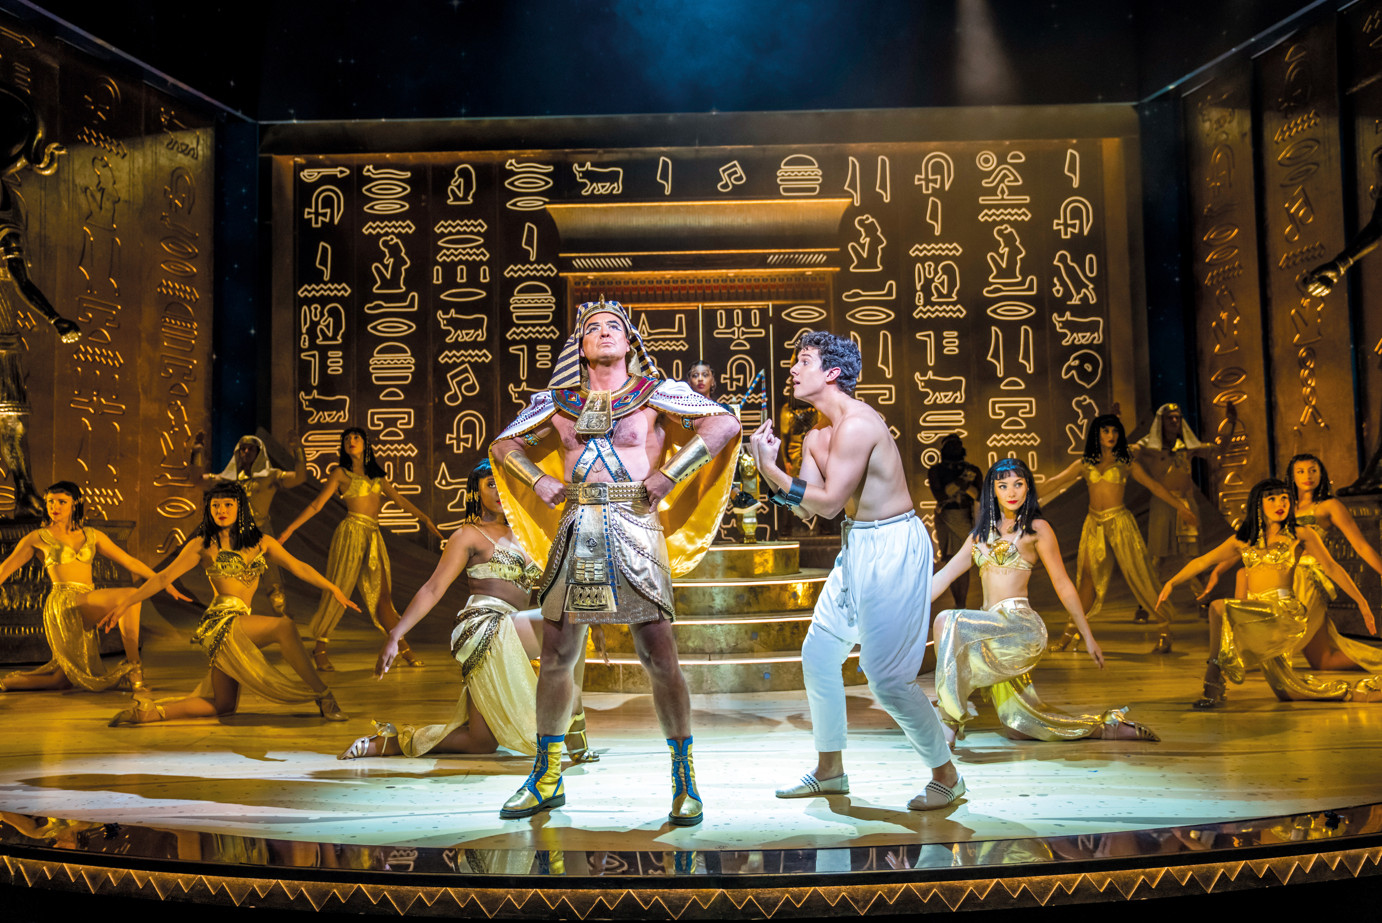 'joseph and the amazing technicolor dreamcoat' is back!